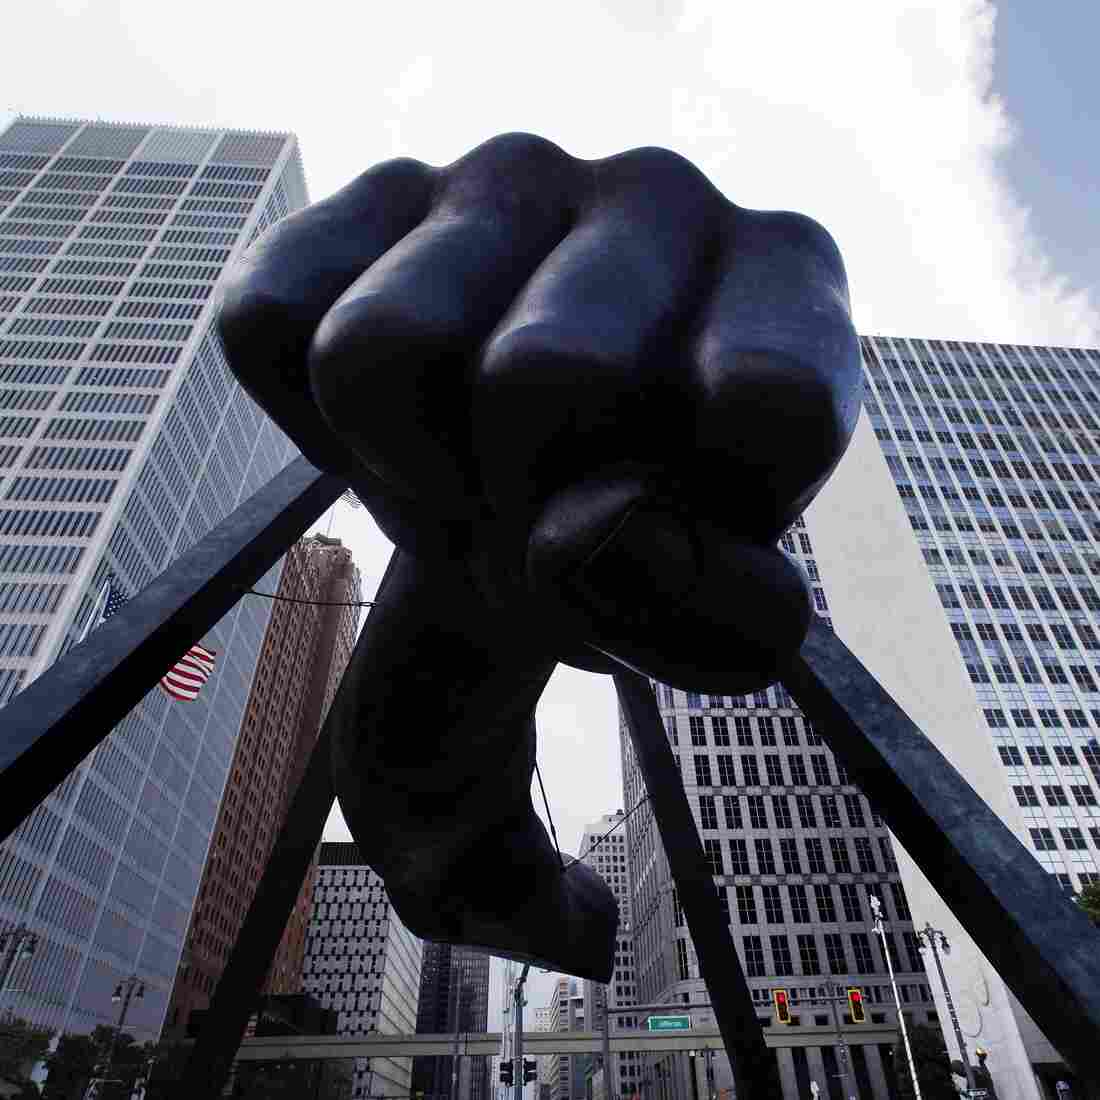 Detroit officially makes its case for bankruptcy before a federal judge on Wednesday. The city is currently saddled with $18 billion in long-term debt, and officials see bankruptcy as their only choice.